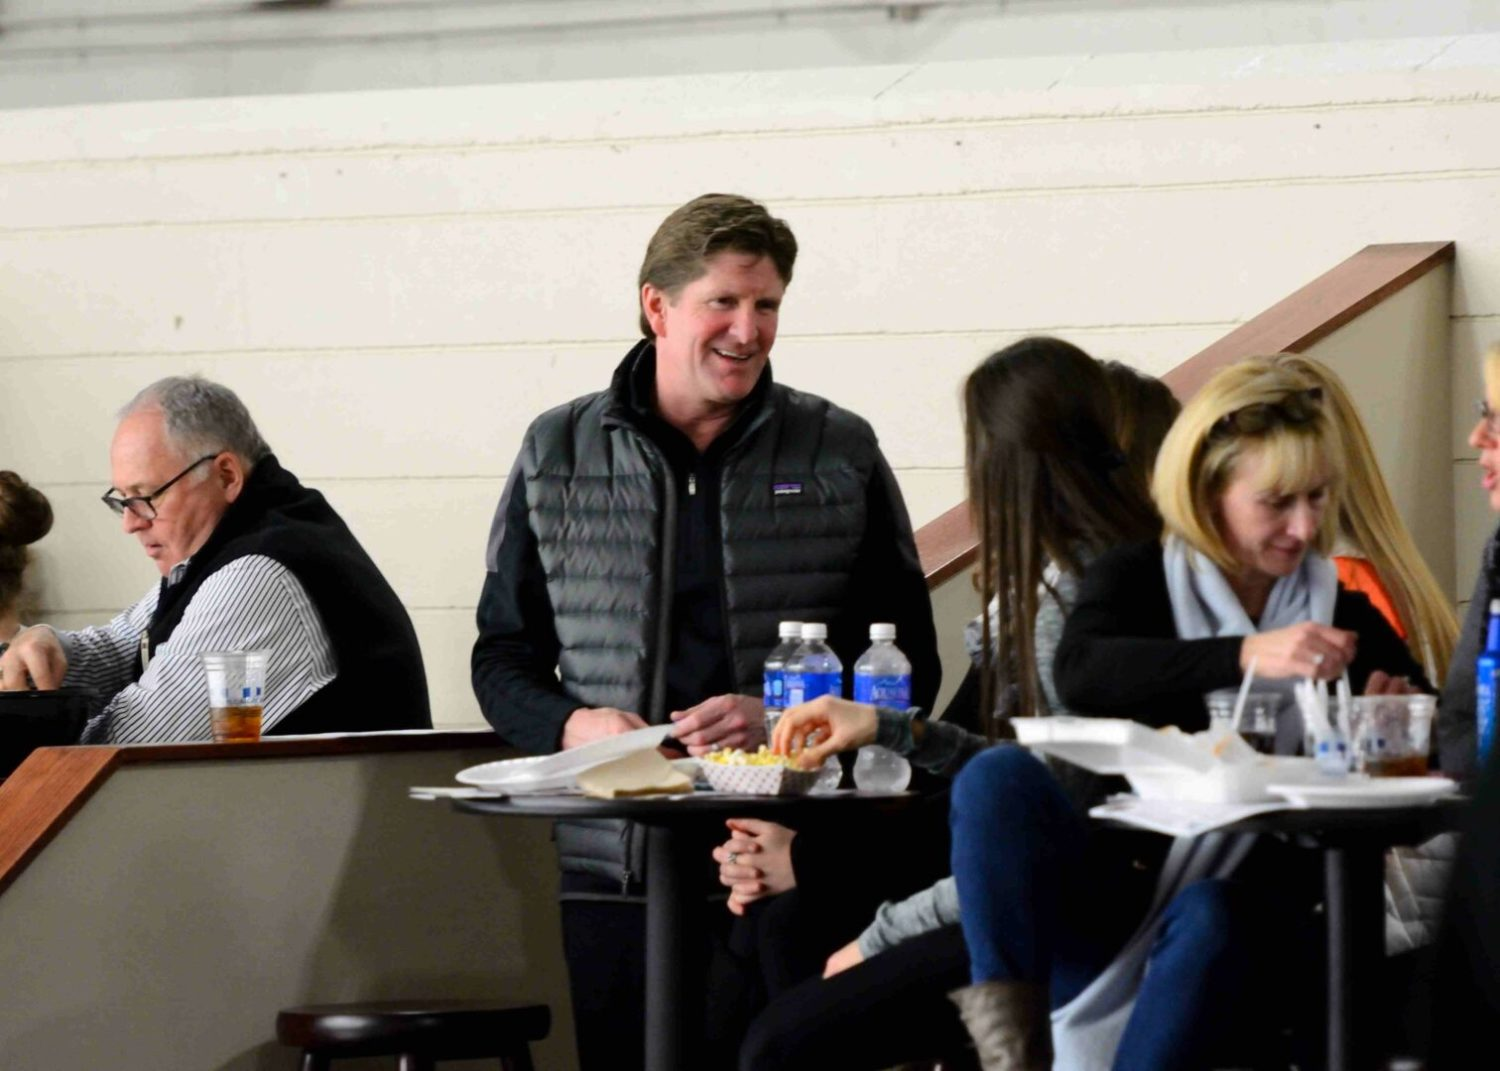 Mike Babcock cheerfully signed autographs, posed for photos at Jacks game – until the action on the ice started